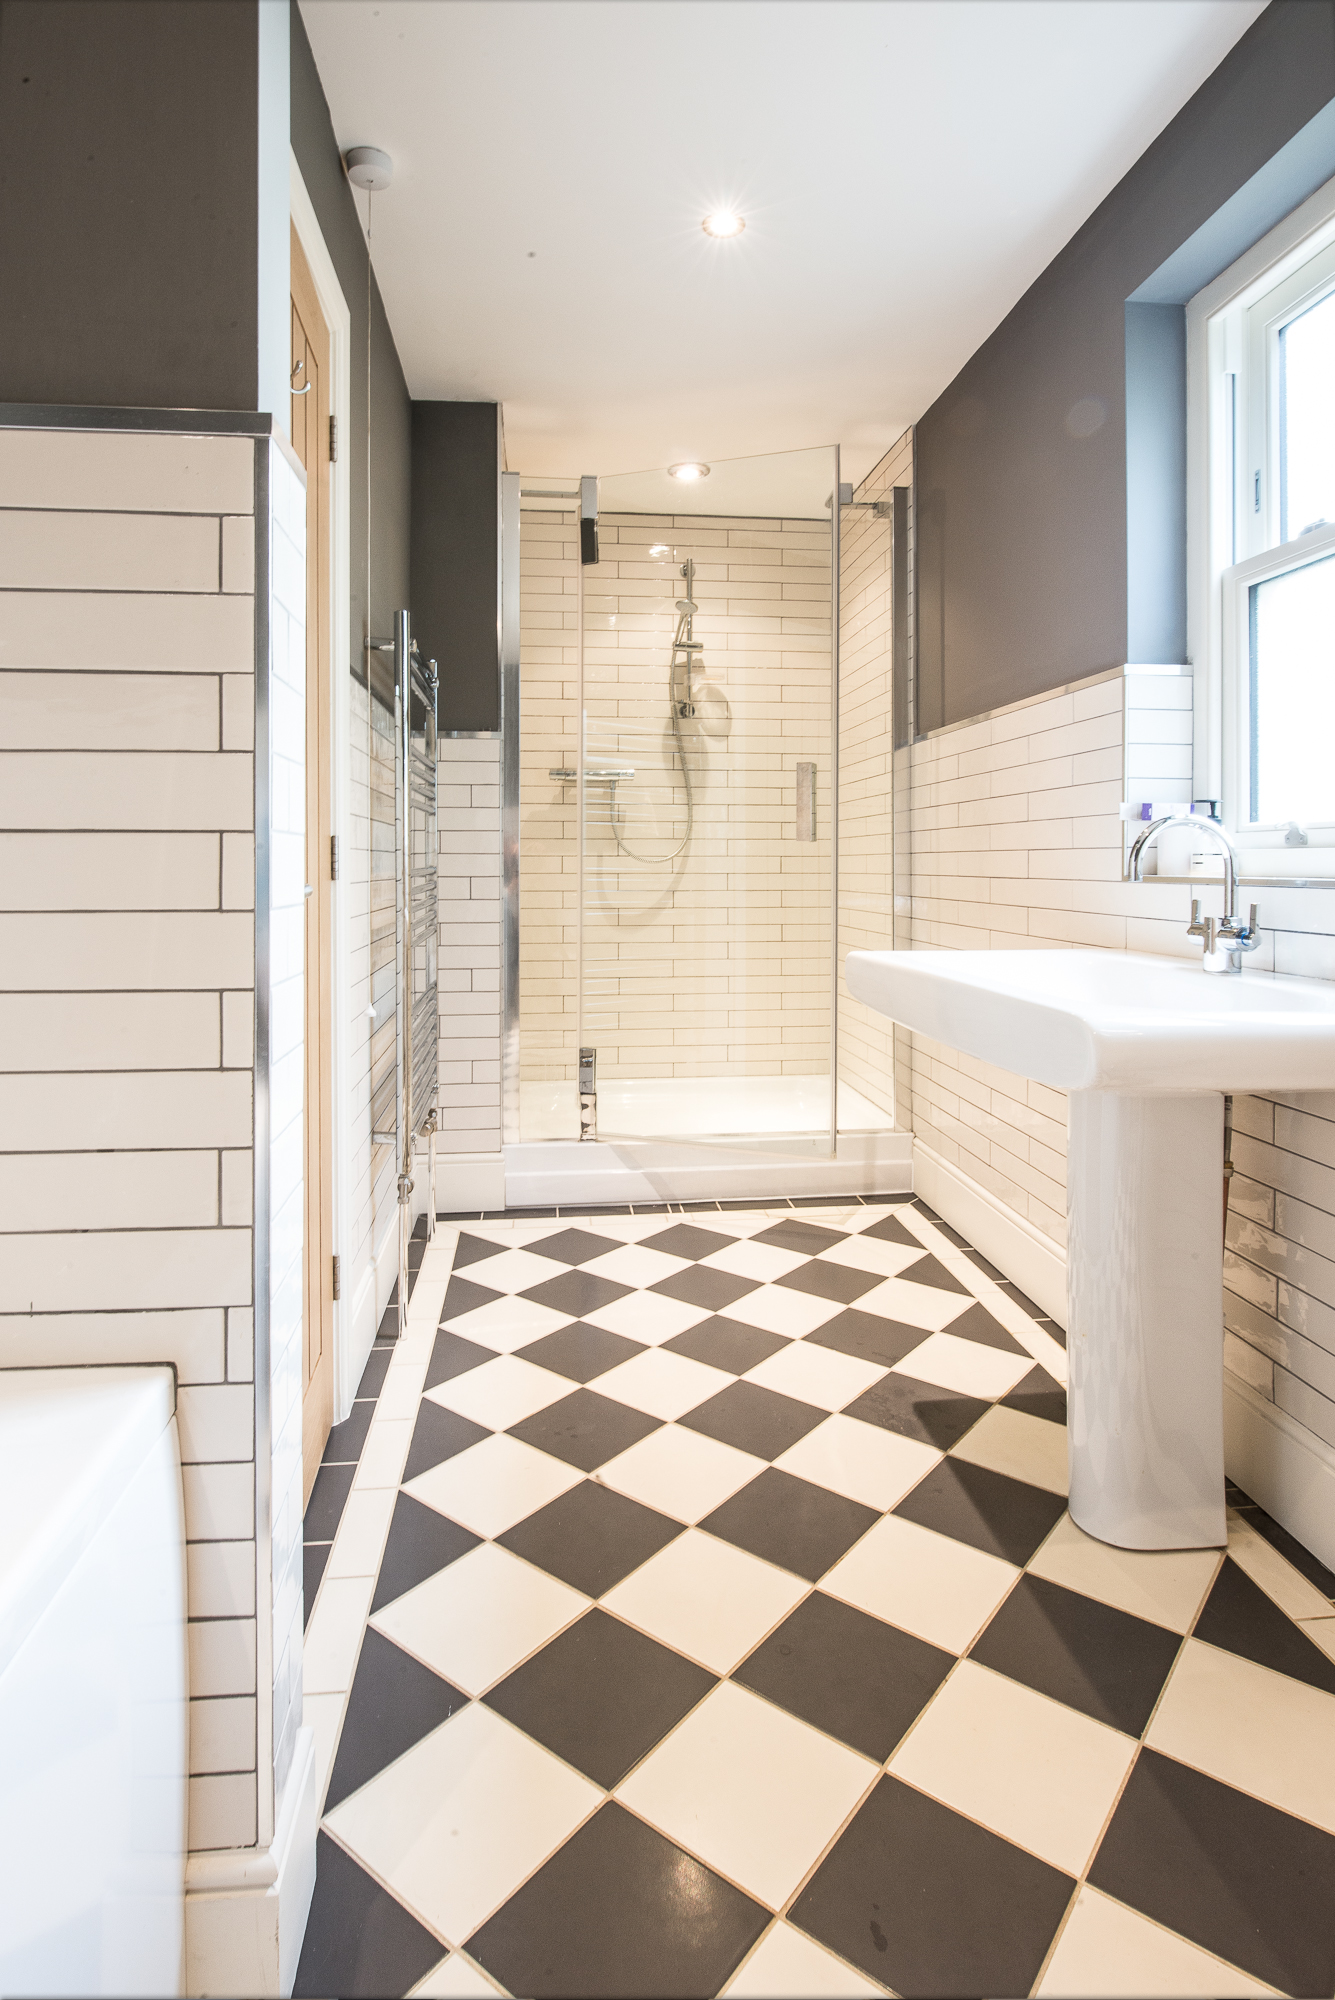 newleaf-tiling-decorating-family-bathroom